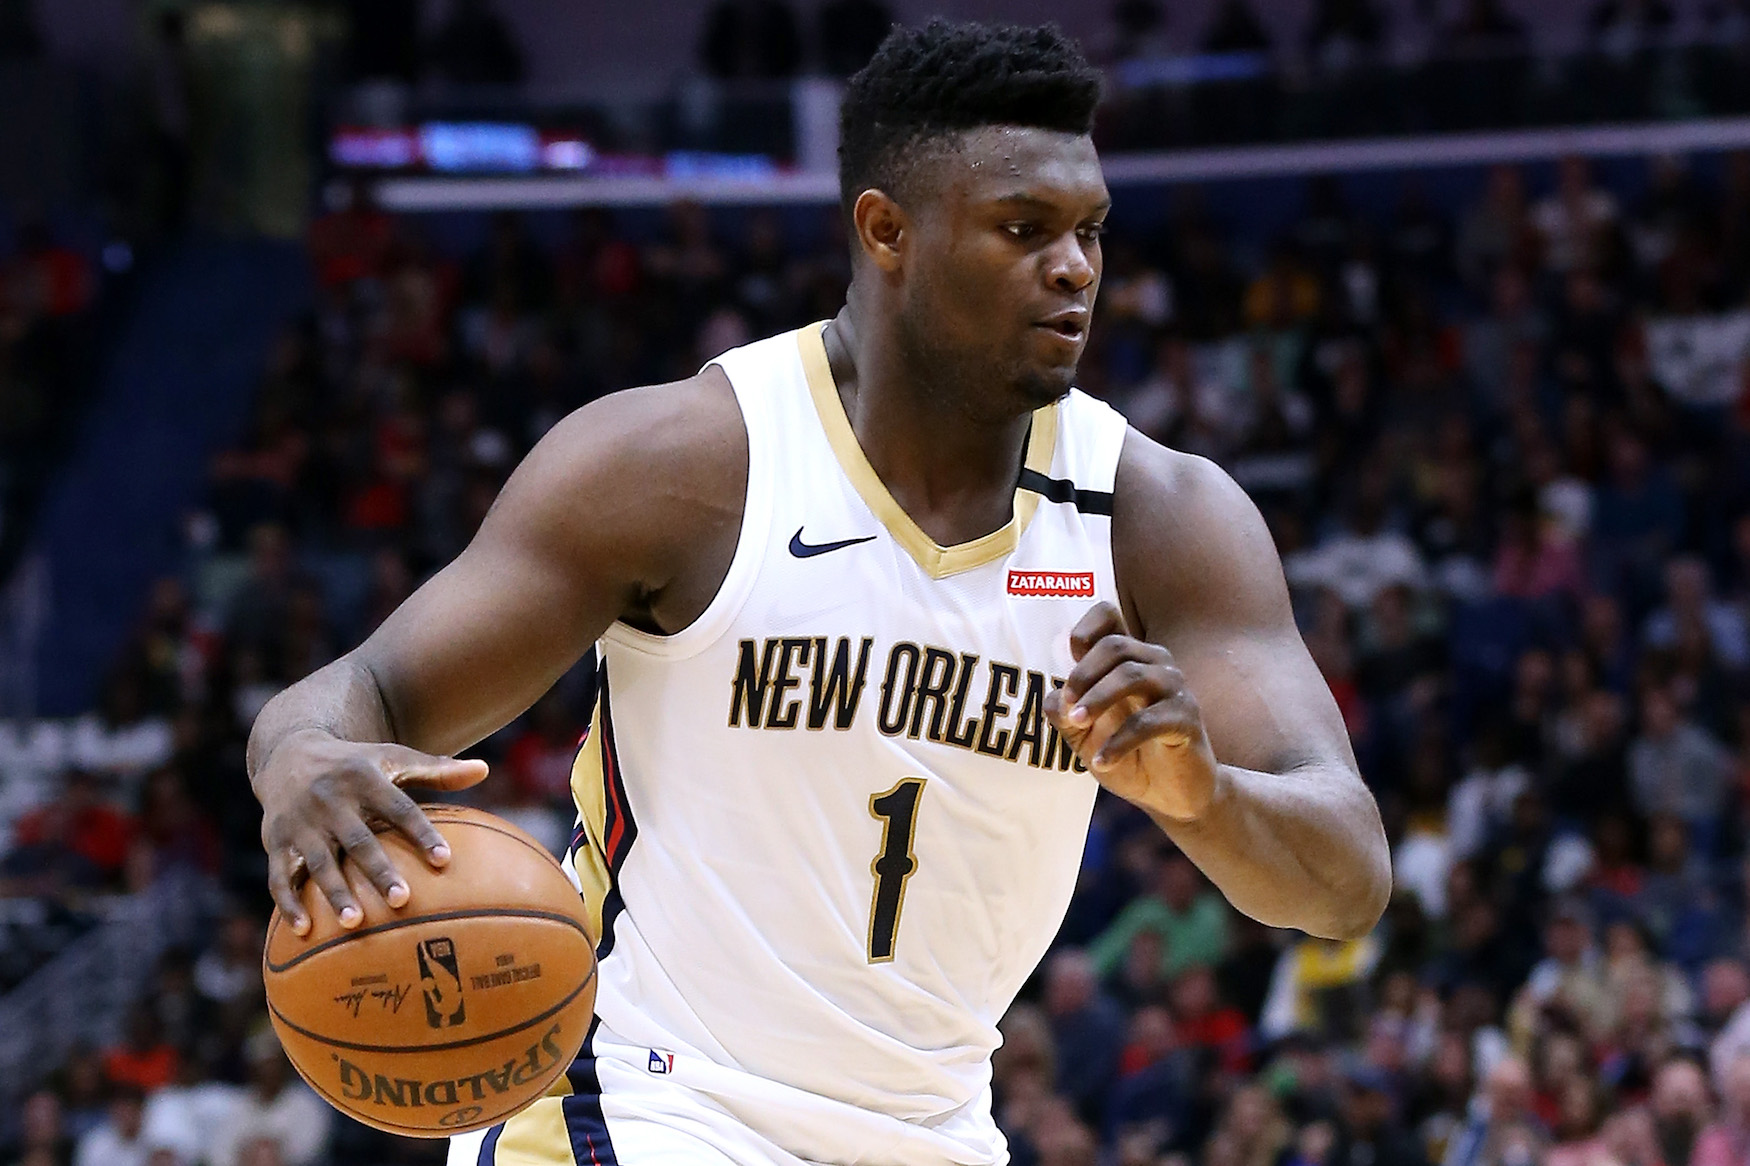 What Are Zion Williamson's Height and Wingspan?